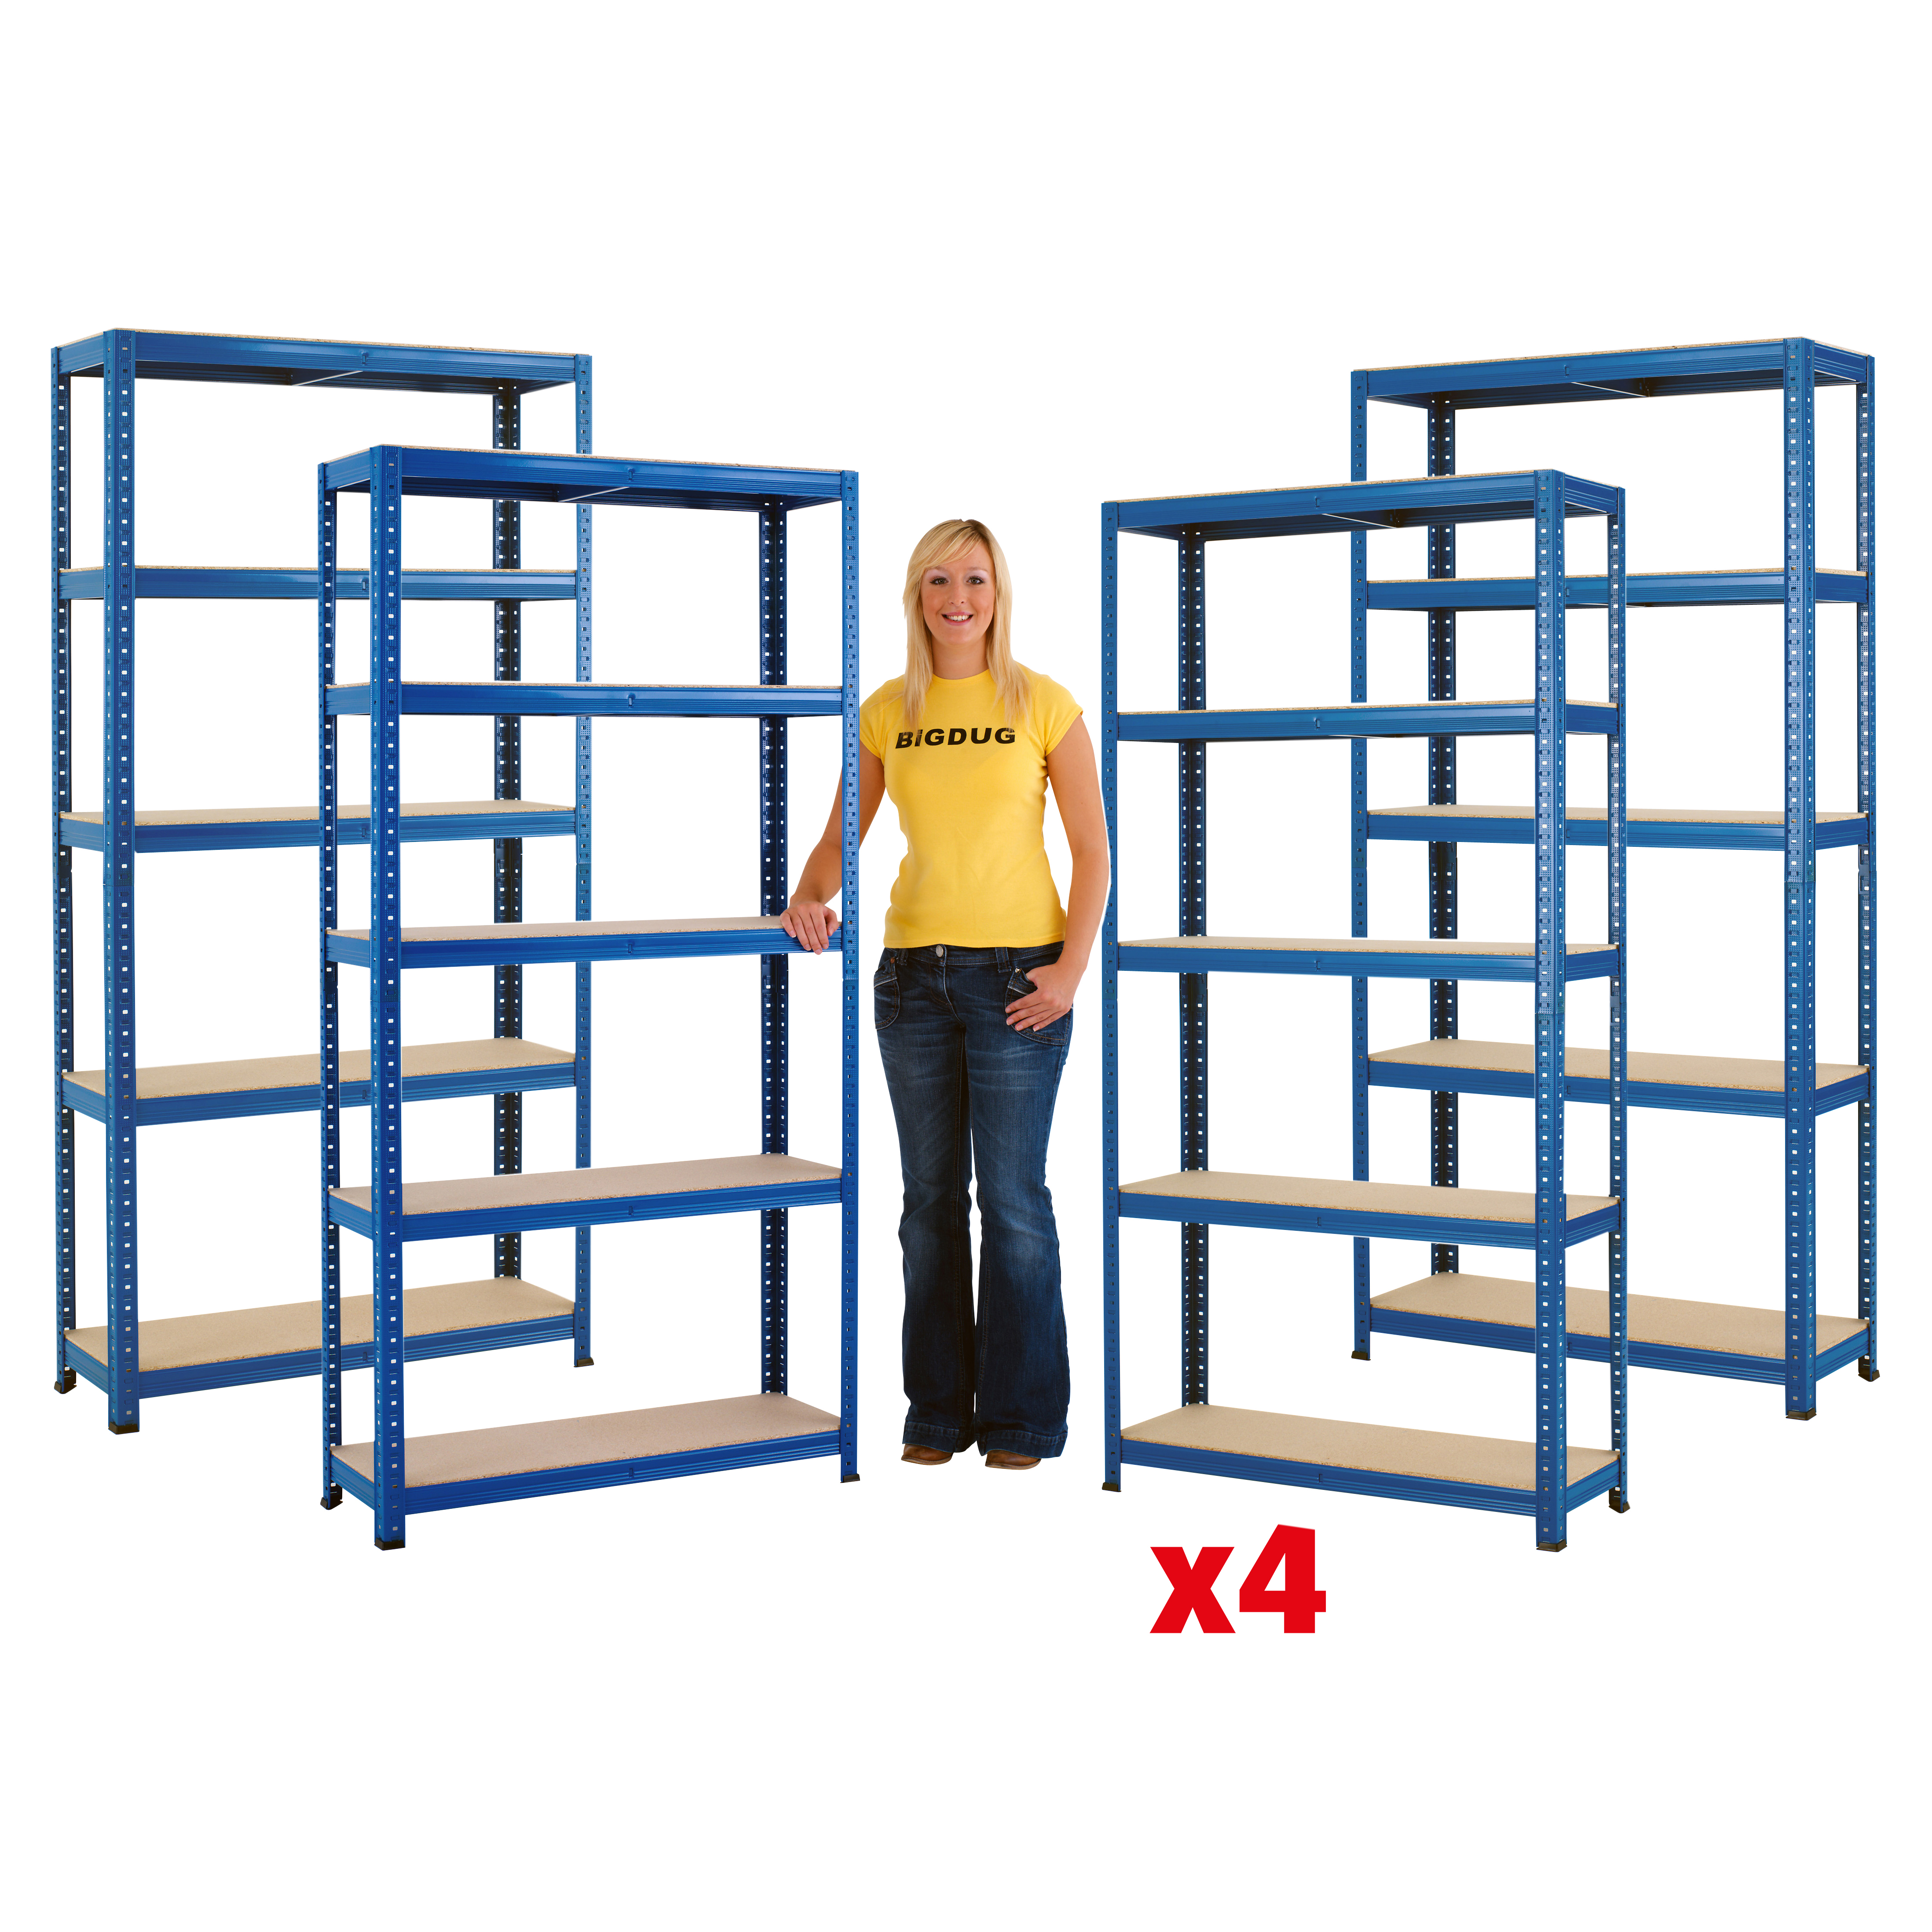 4 Bays All Blue Racking Steel Shelving 1780h x 900w x 300d mm 5 Tier 175kg UDL